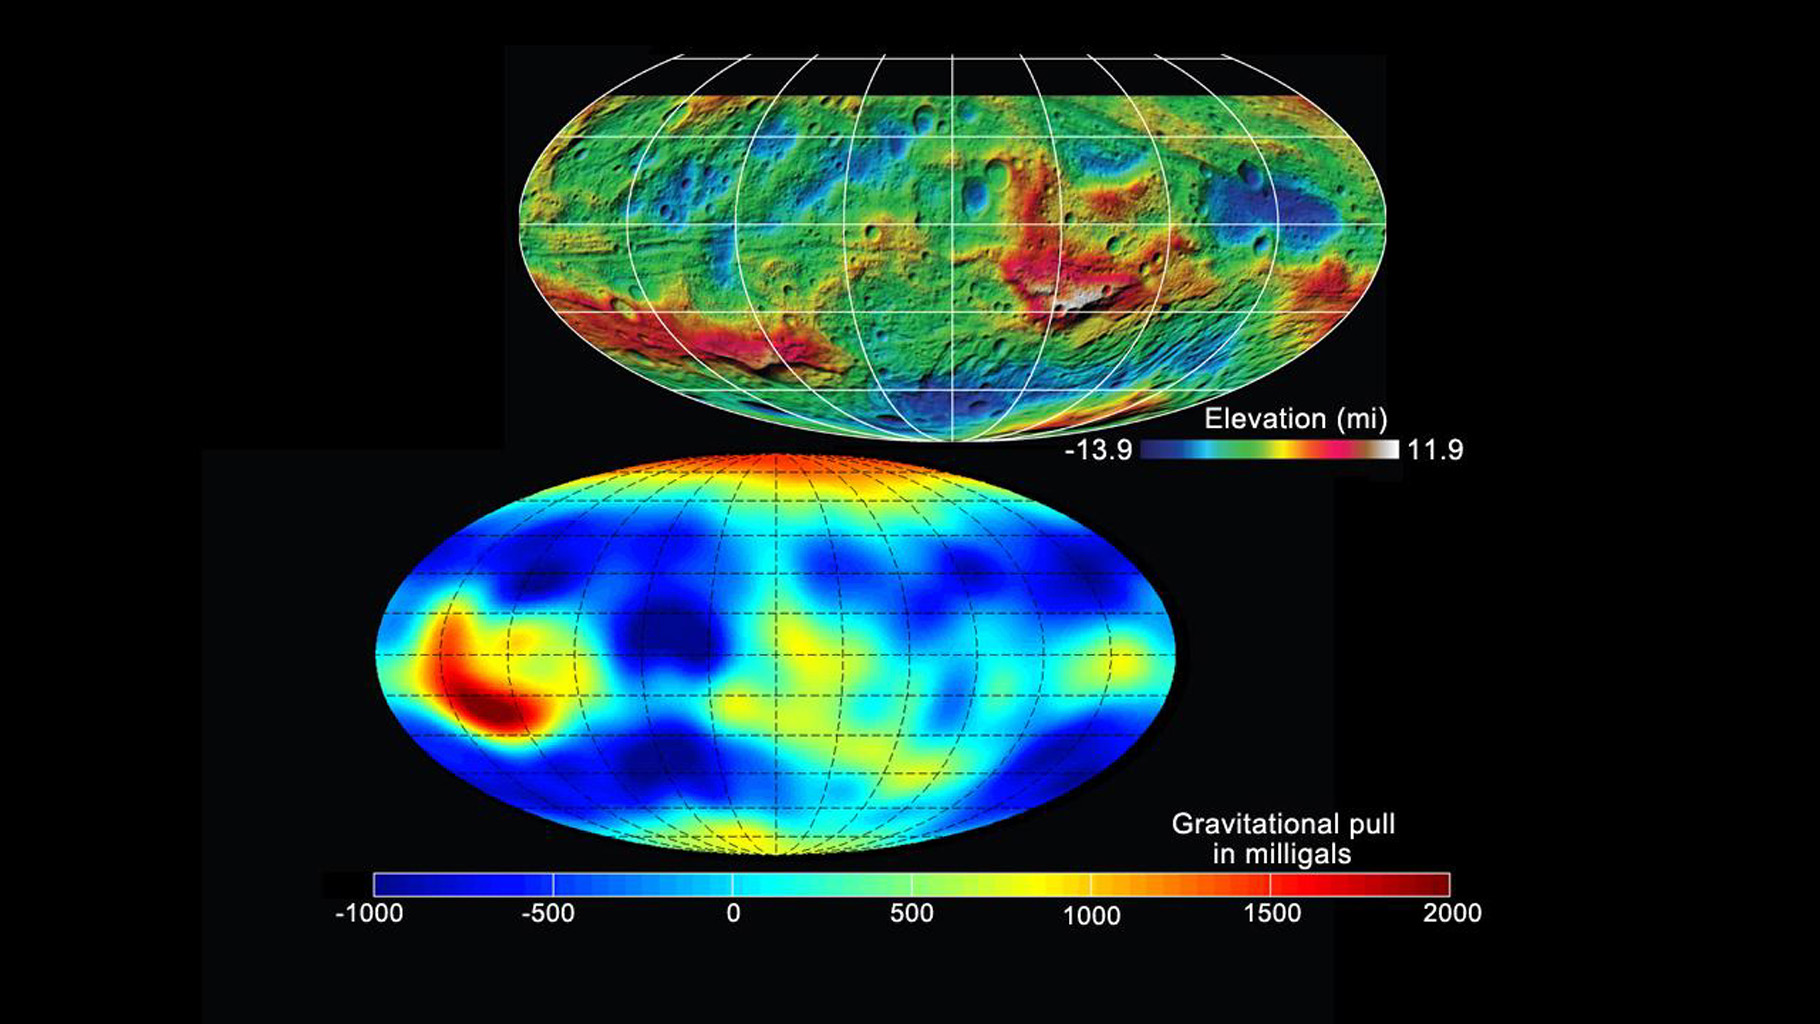 This image from NASA's Dawn mission shows topography of the giant asteroid Vesta and a map of Vesta's gravity variations.